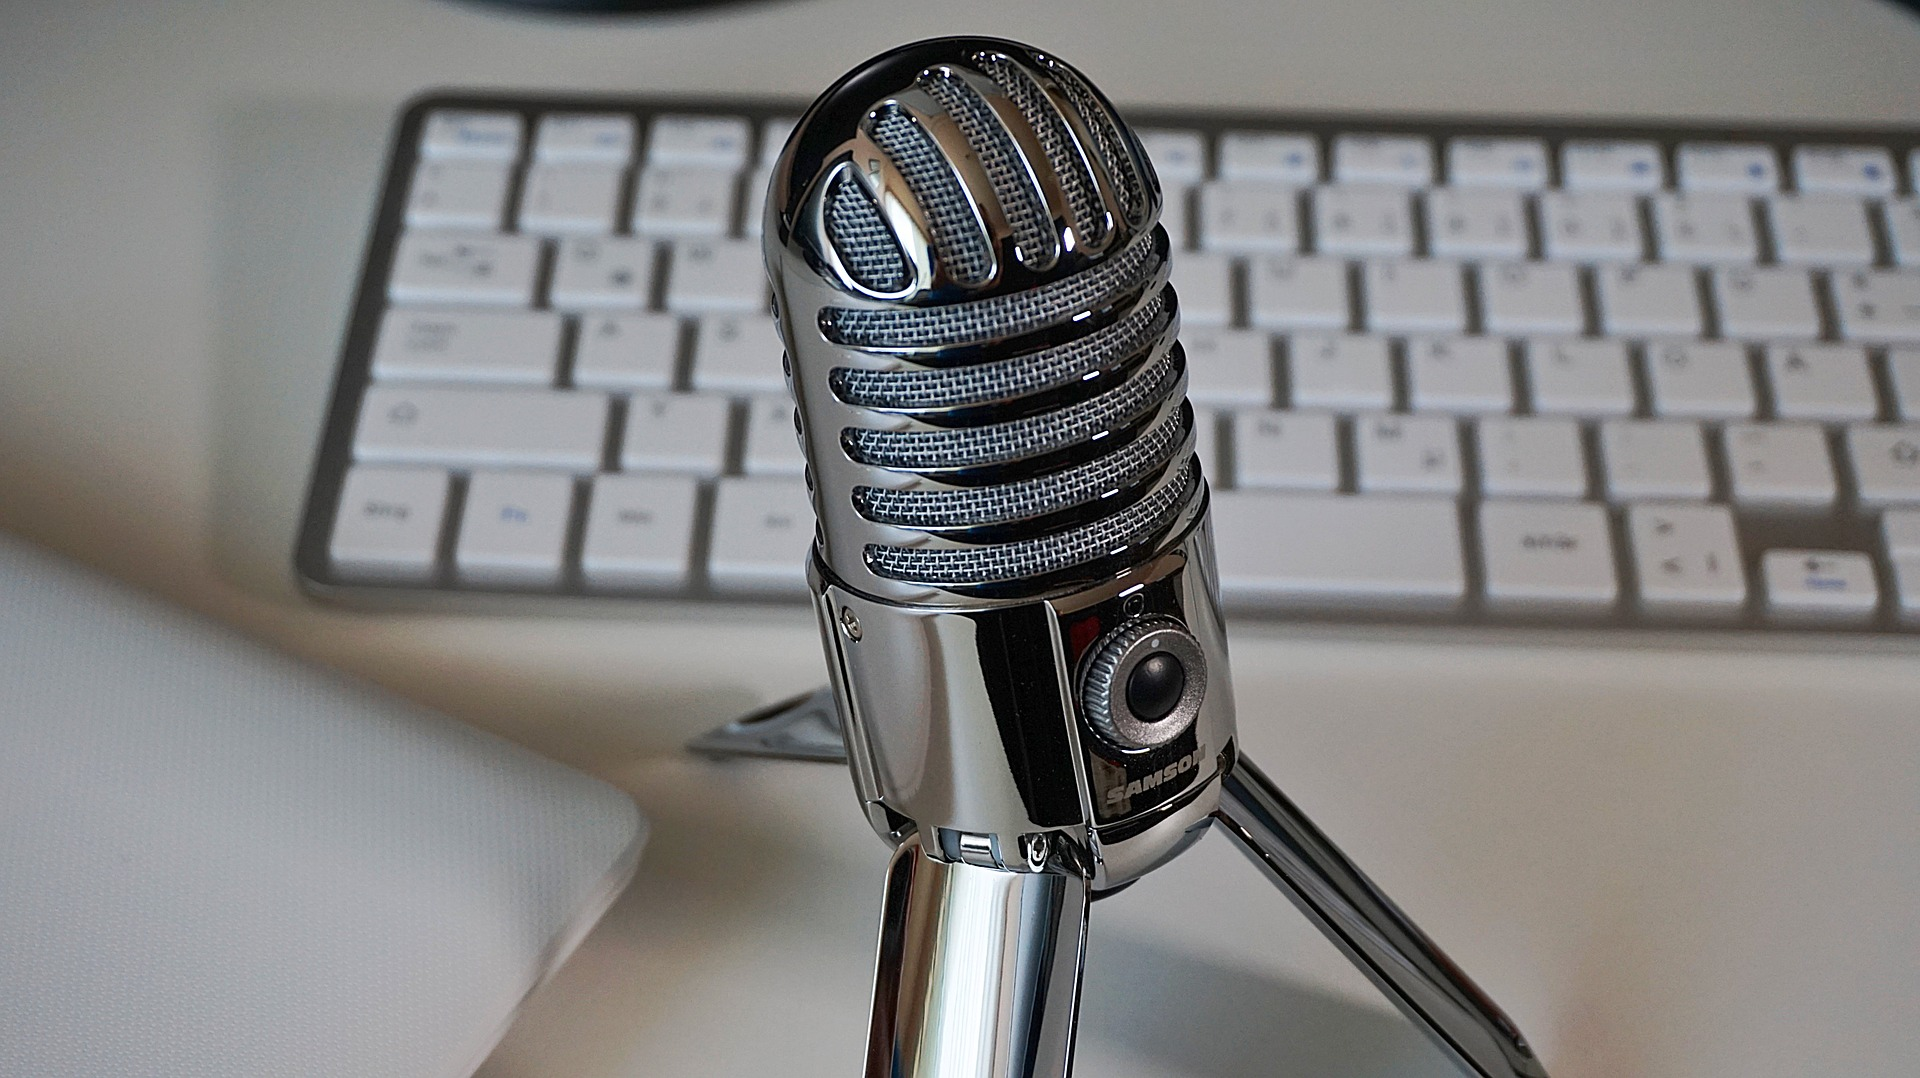 Microphone in front of a keyboard